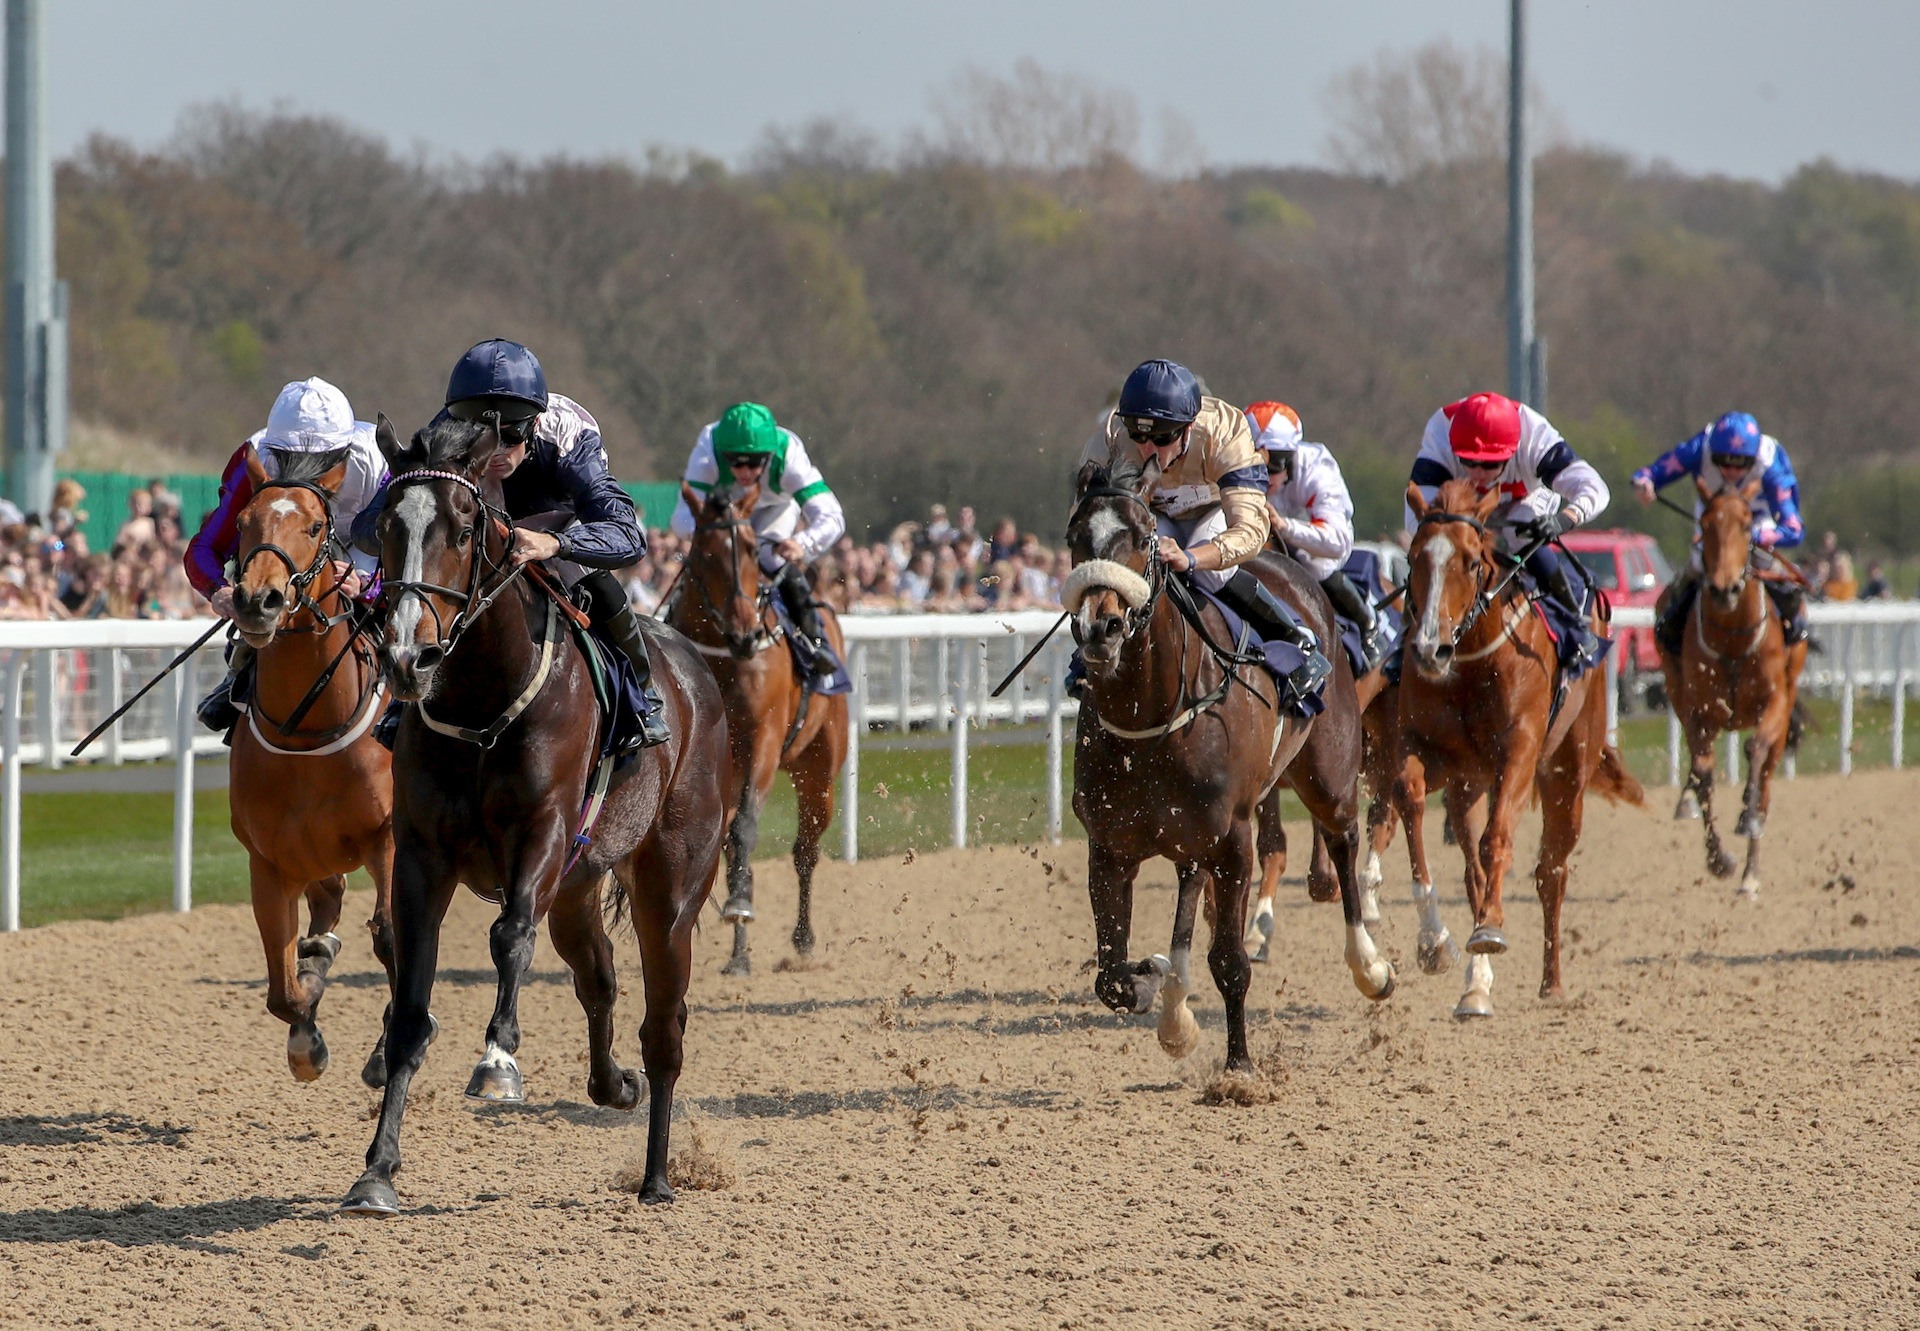 Queen Mary Aim For Unbeaten Starspangledbanner Filly-7521